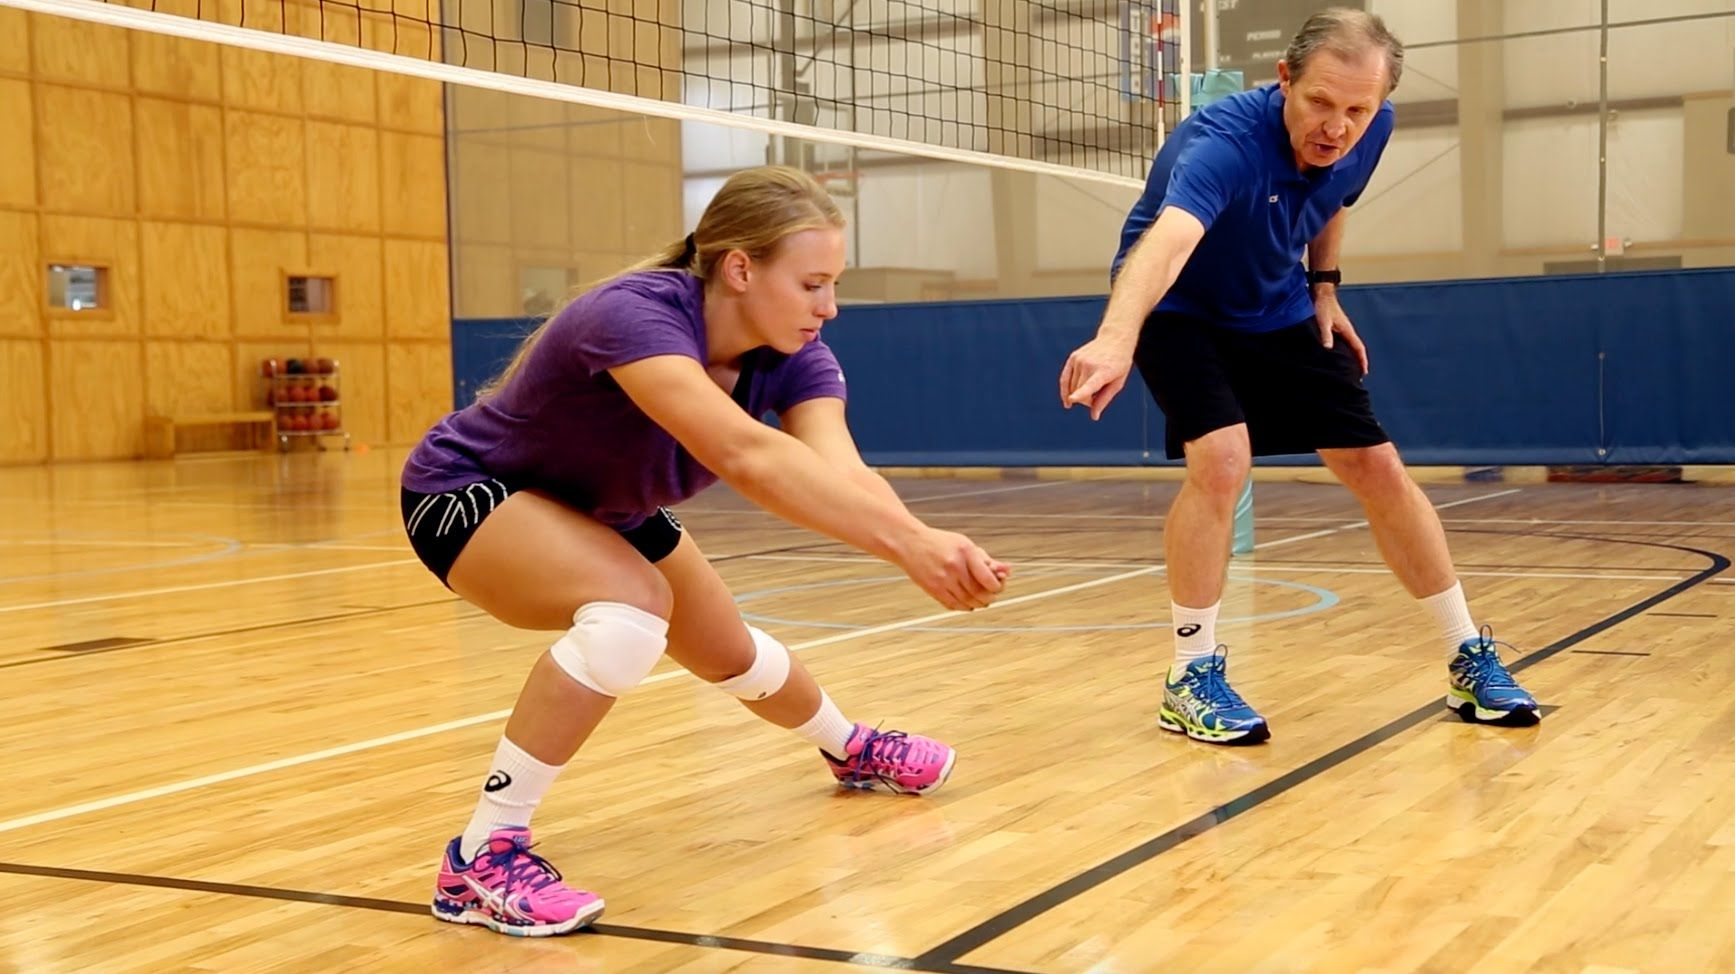 Defense Tips Terry Liskevych The Art Of Coaching Volleyball Coaching Volleyball Volleyball Drills Volleyball